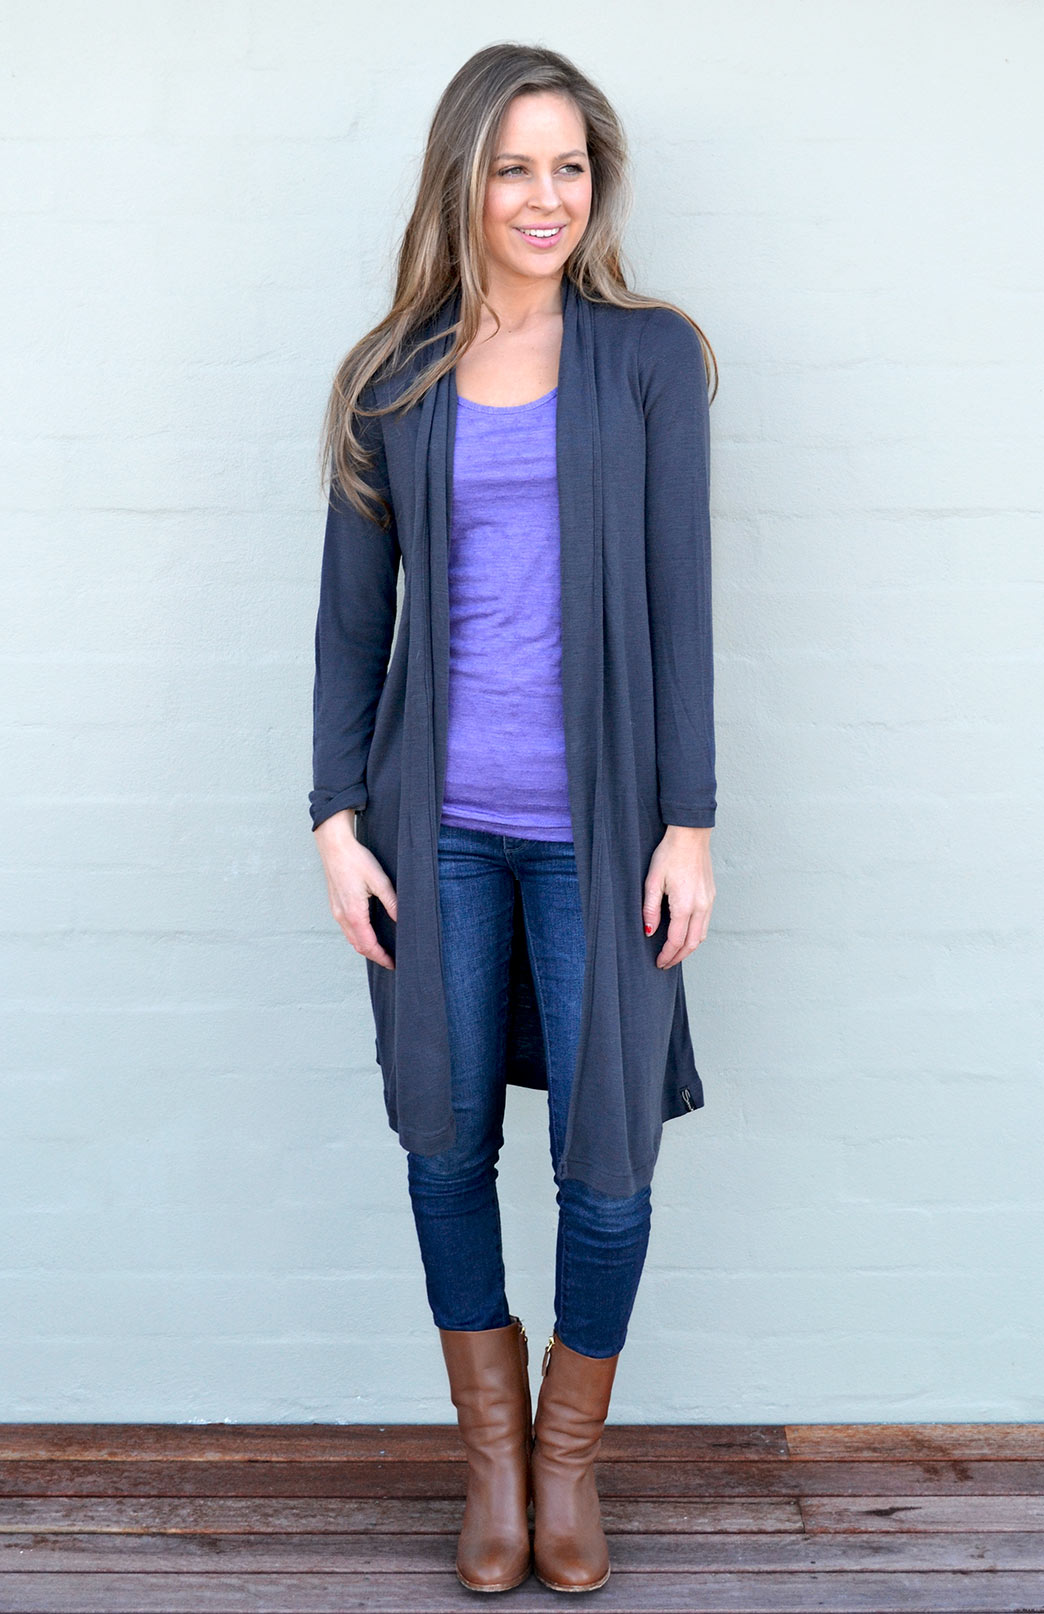 Long Drape Cardigan - Lightweight - Women's Steel Grey Lightweight Merino Wool Long Drape - Smitten Merino Tasmania Australia